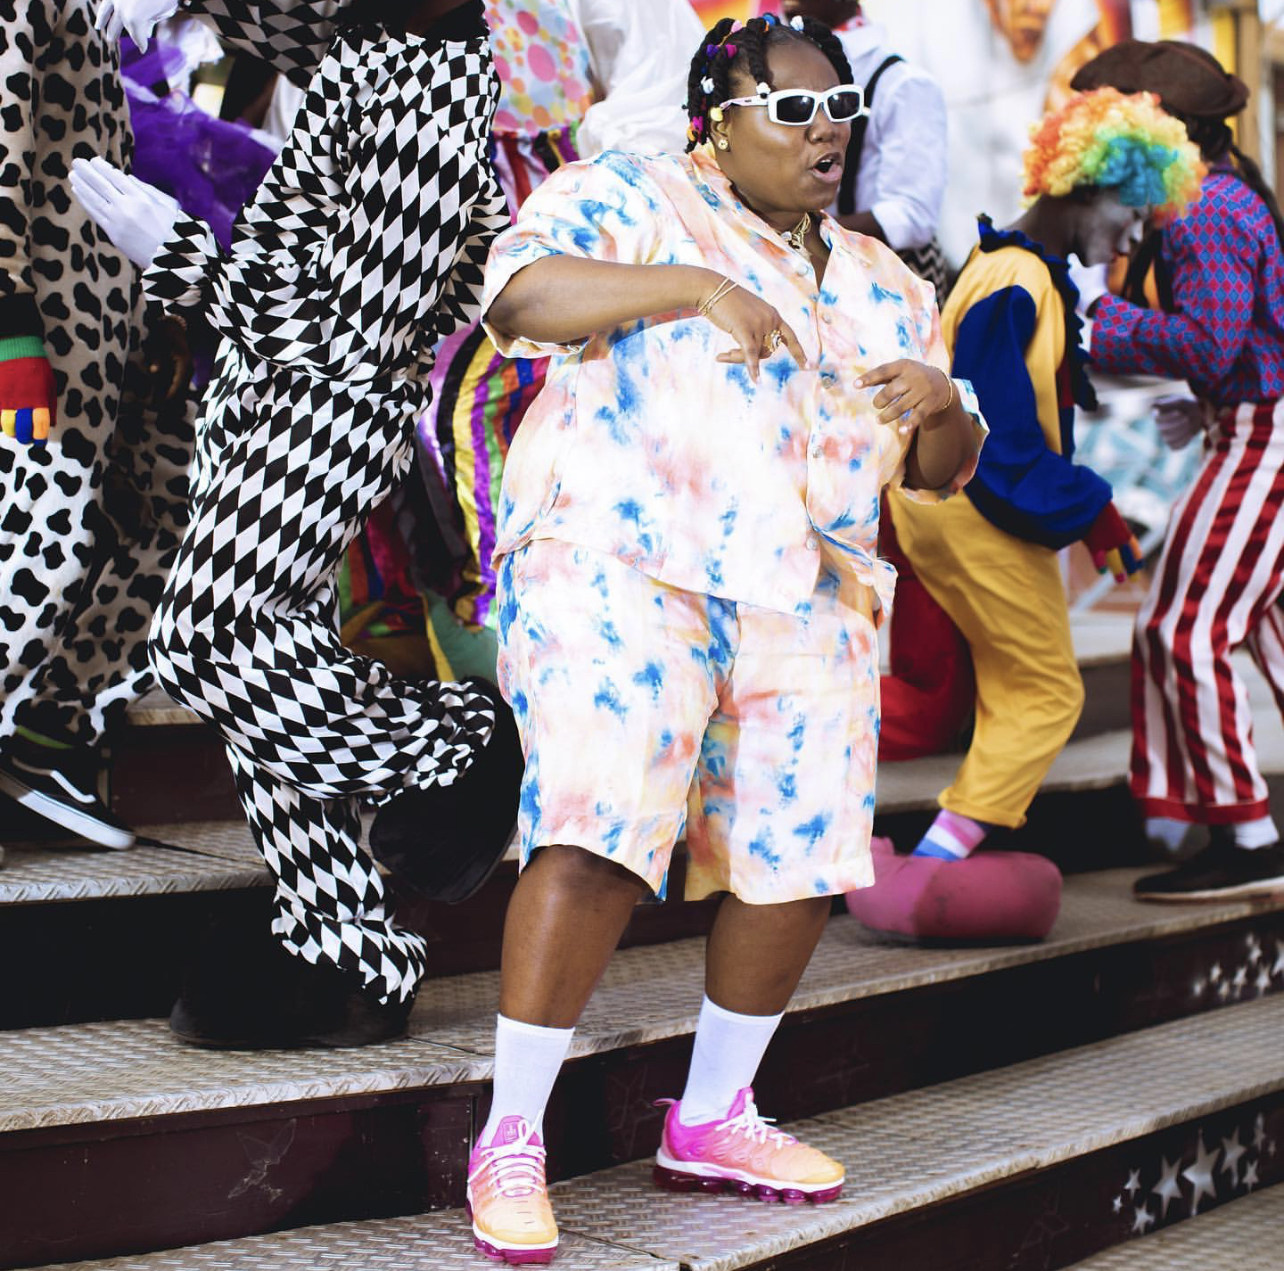 teni-the-entertainer-dancing-on-cover-with-davido-song-for-you-trending-songs-africa